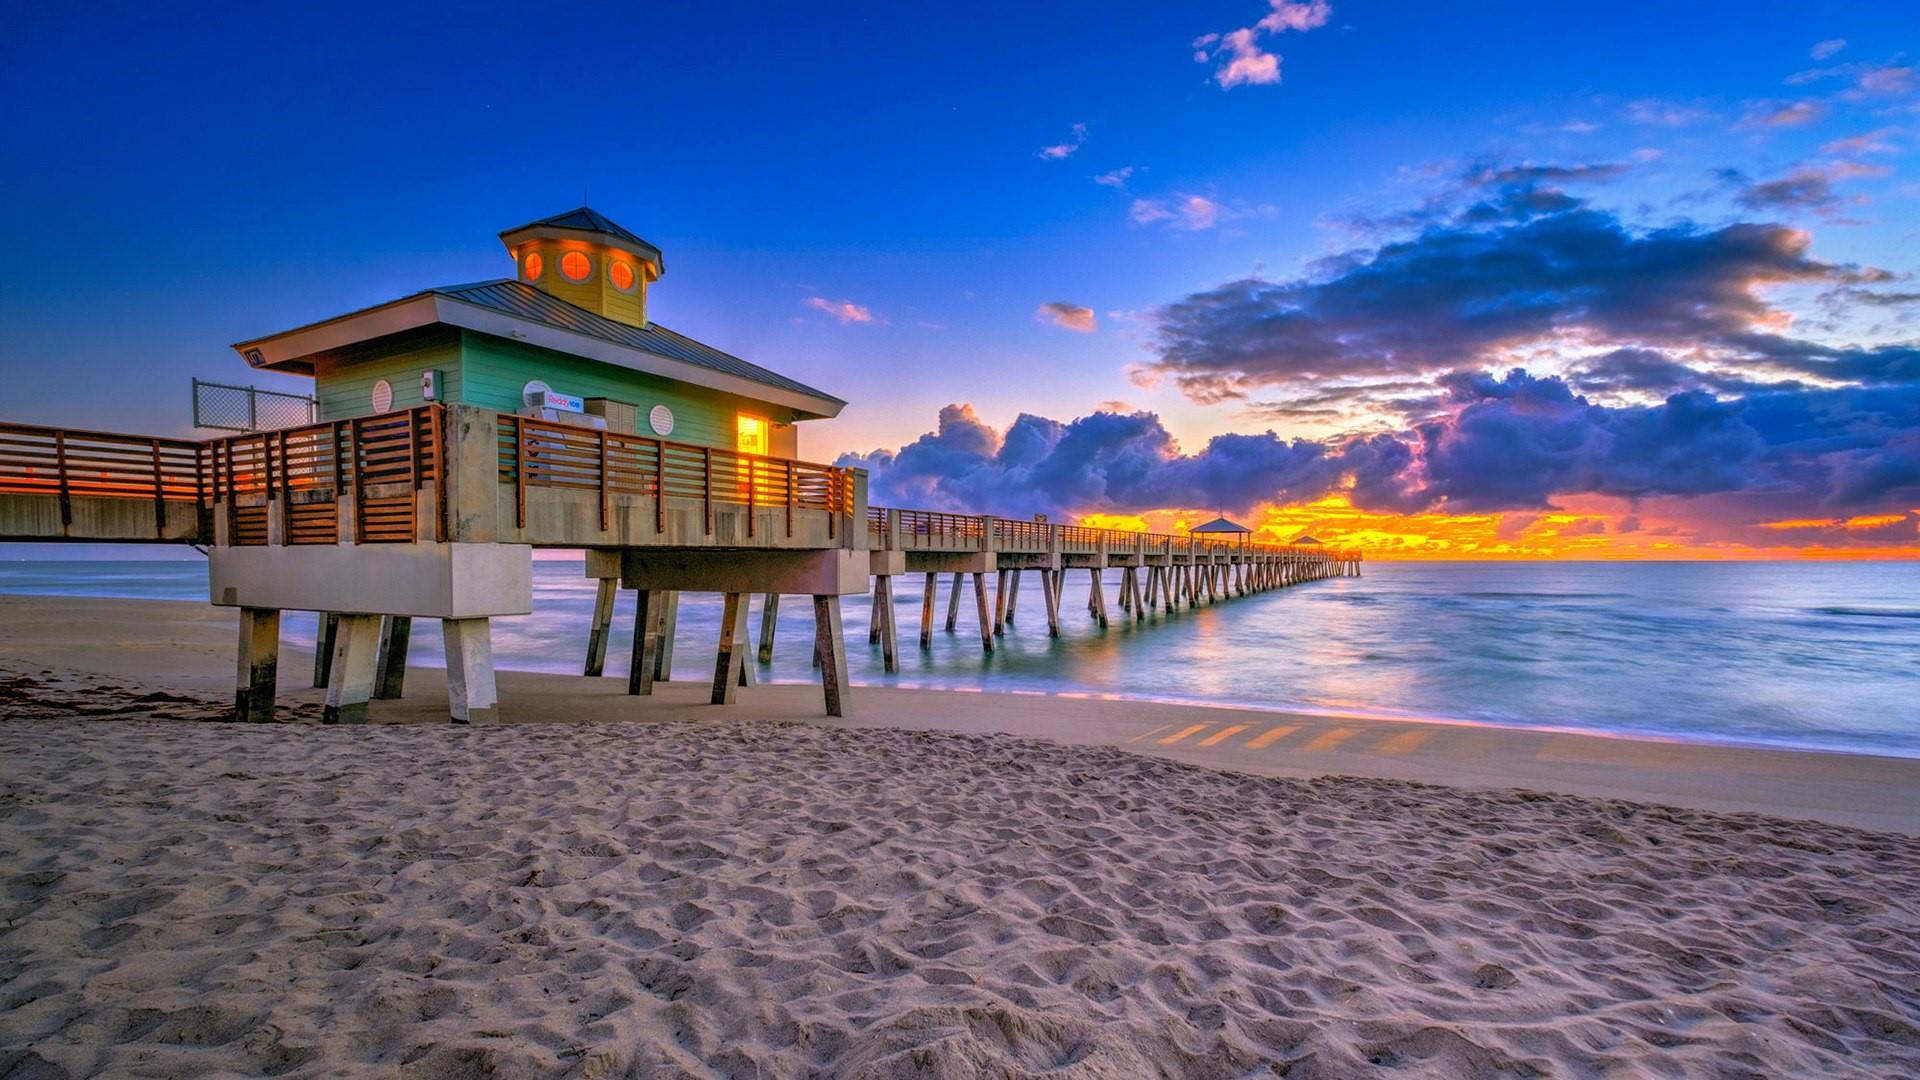 Juno Beach Pier (Florida) wallpaper